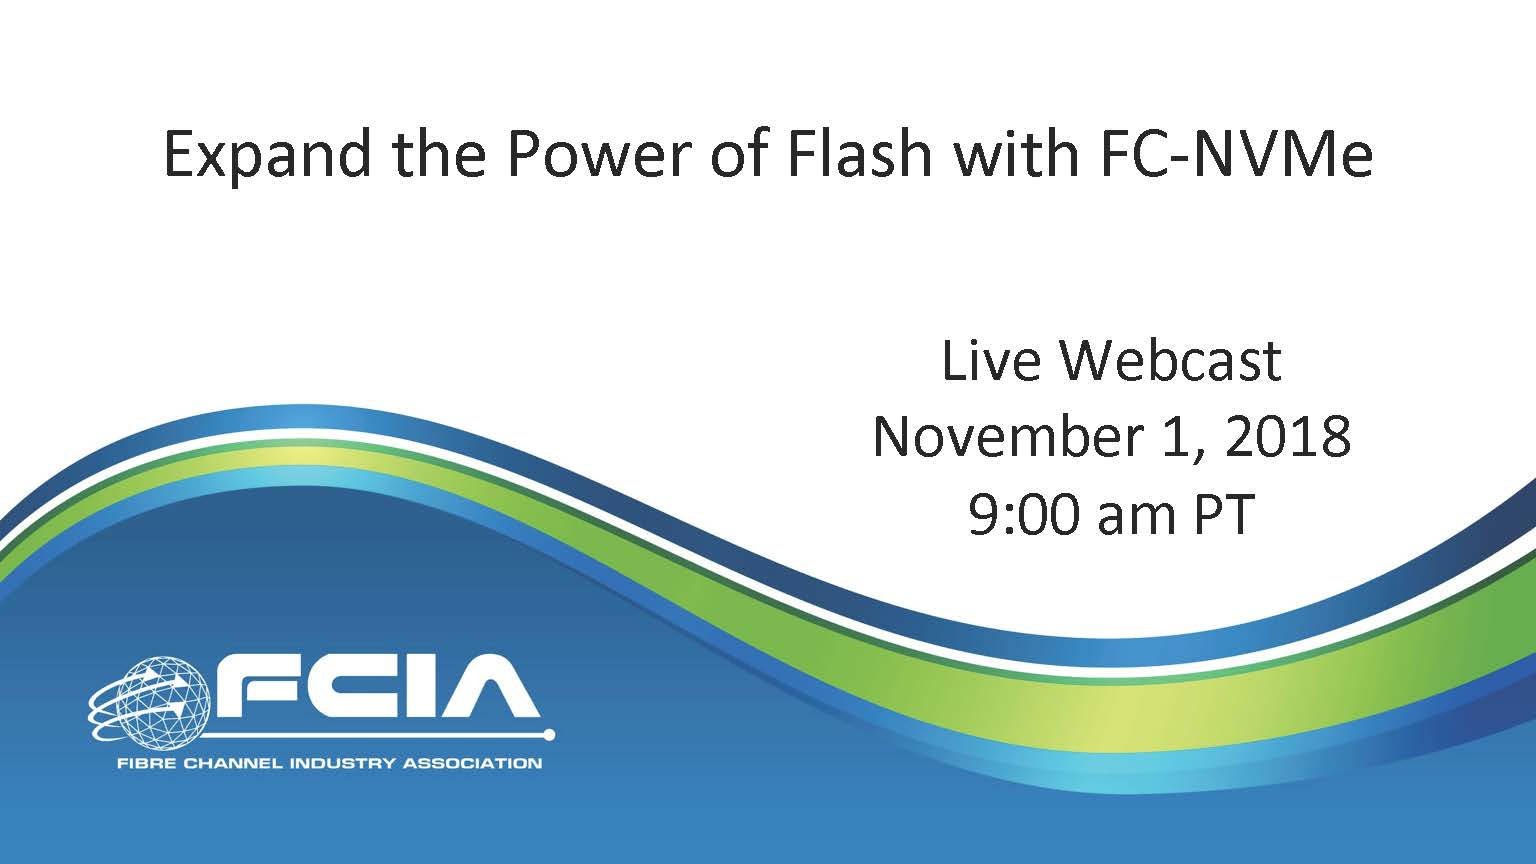 Expand the Power of Flash with FC-NVMe